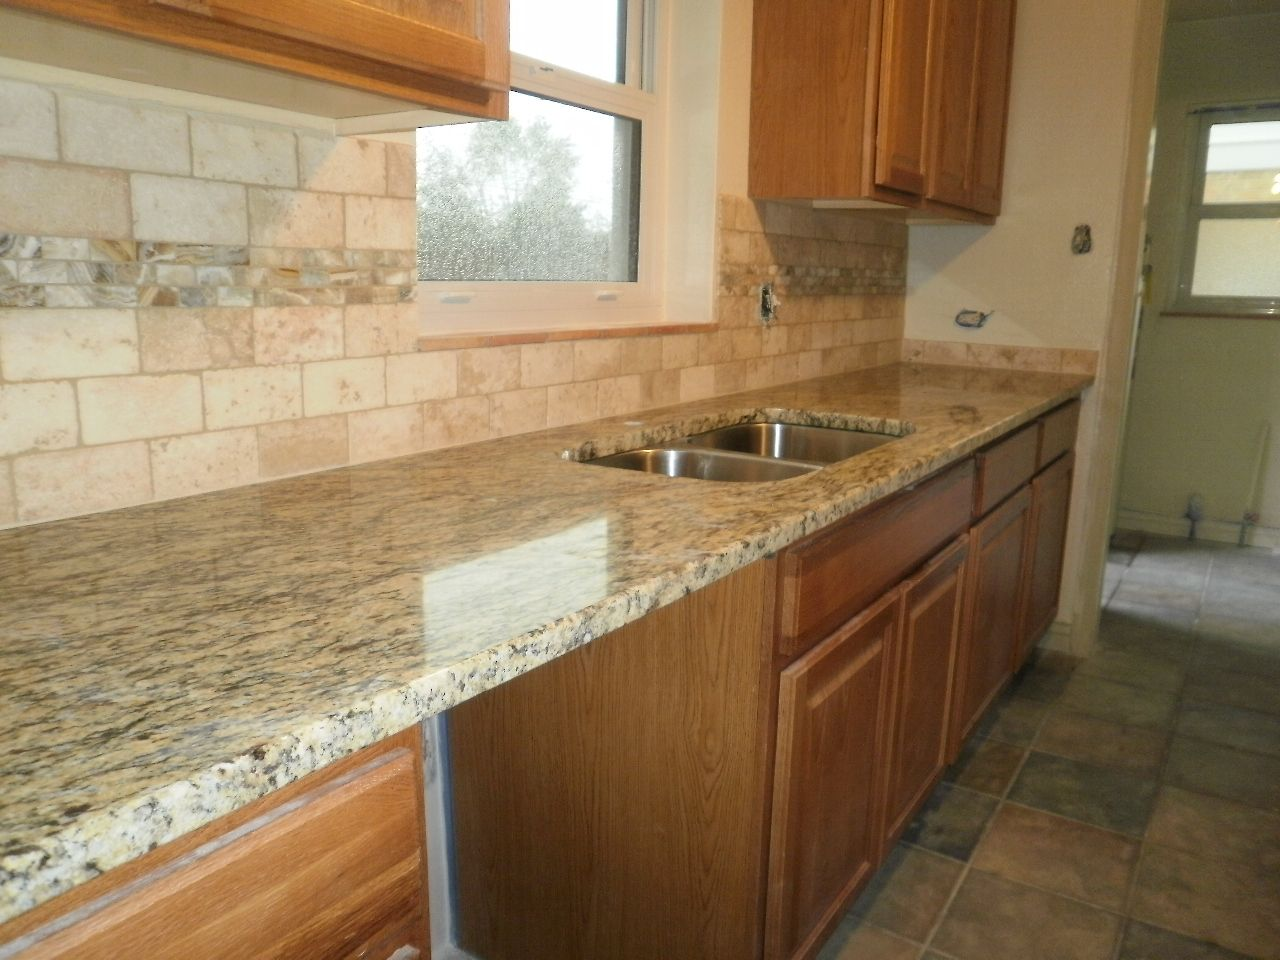 Kitchen Counter Tile High Resolution Laminate Countertops The Most Suitable Kitchen